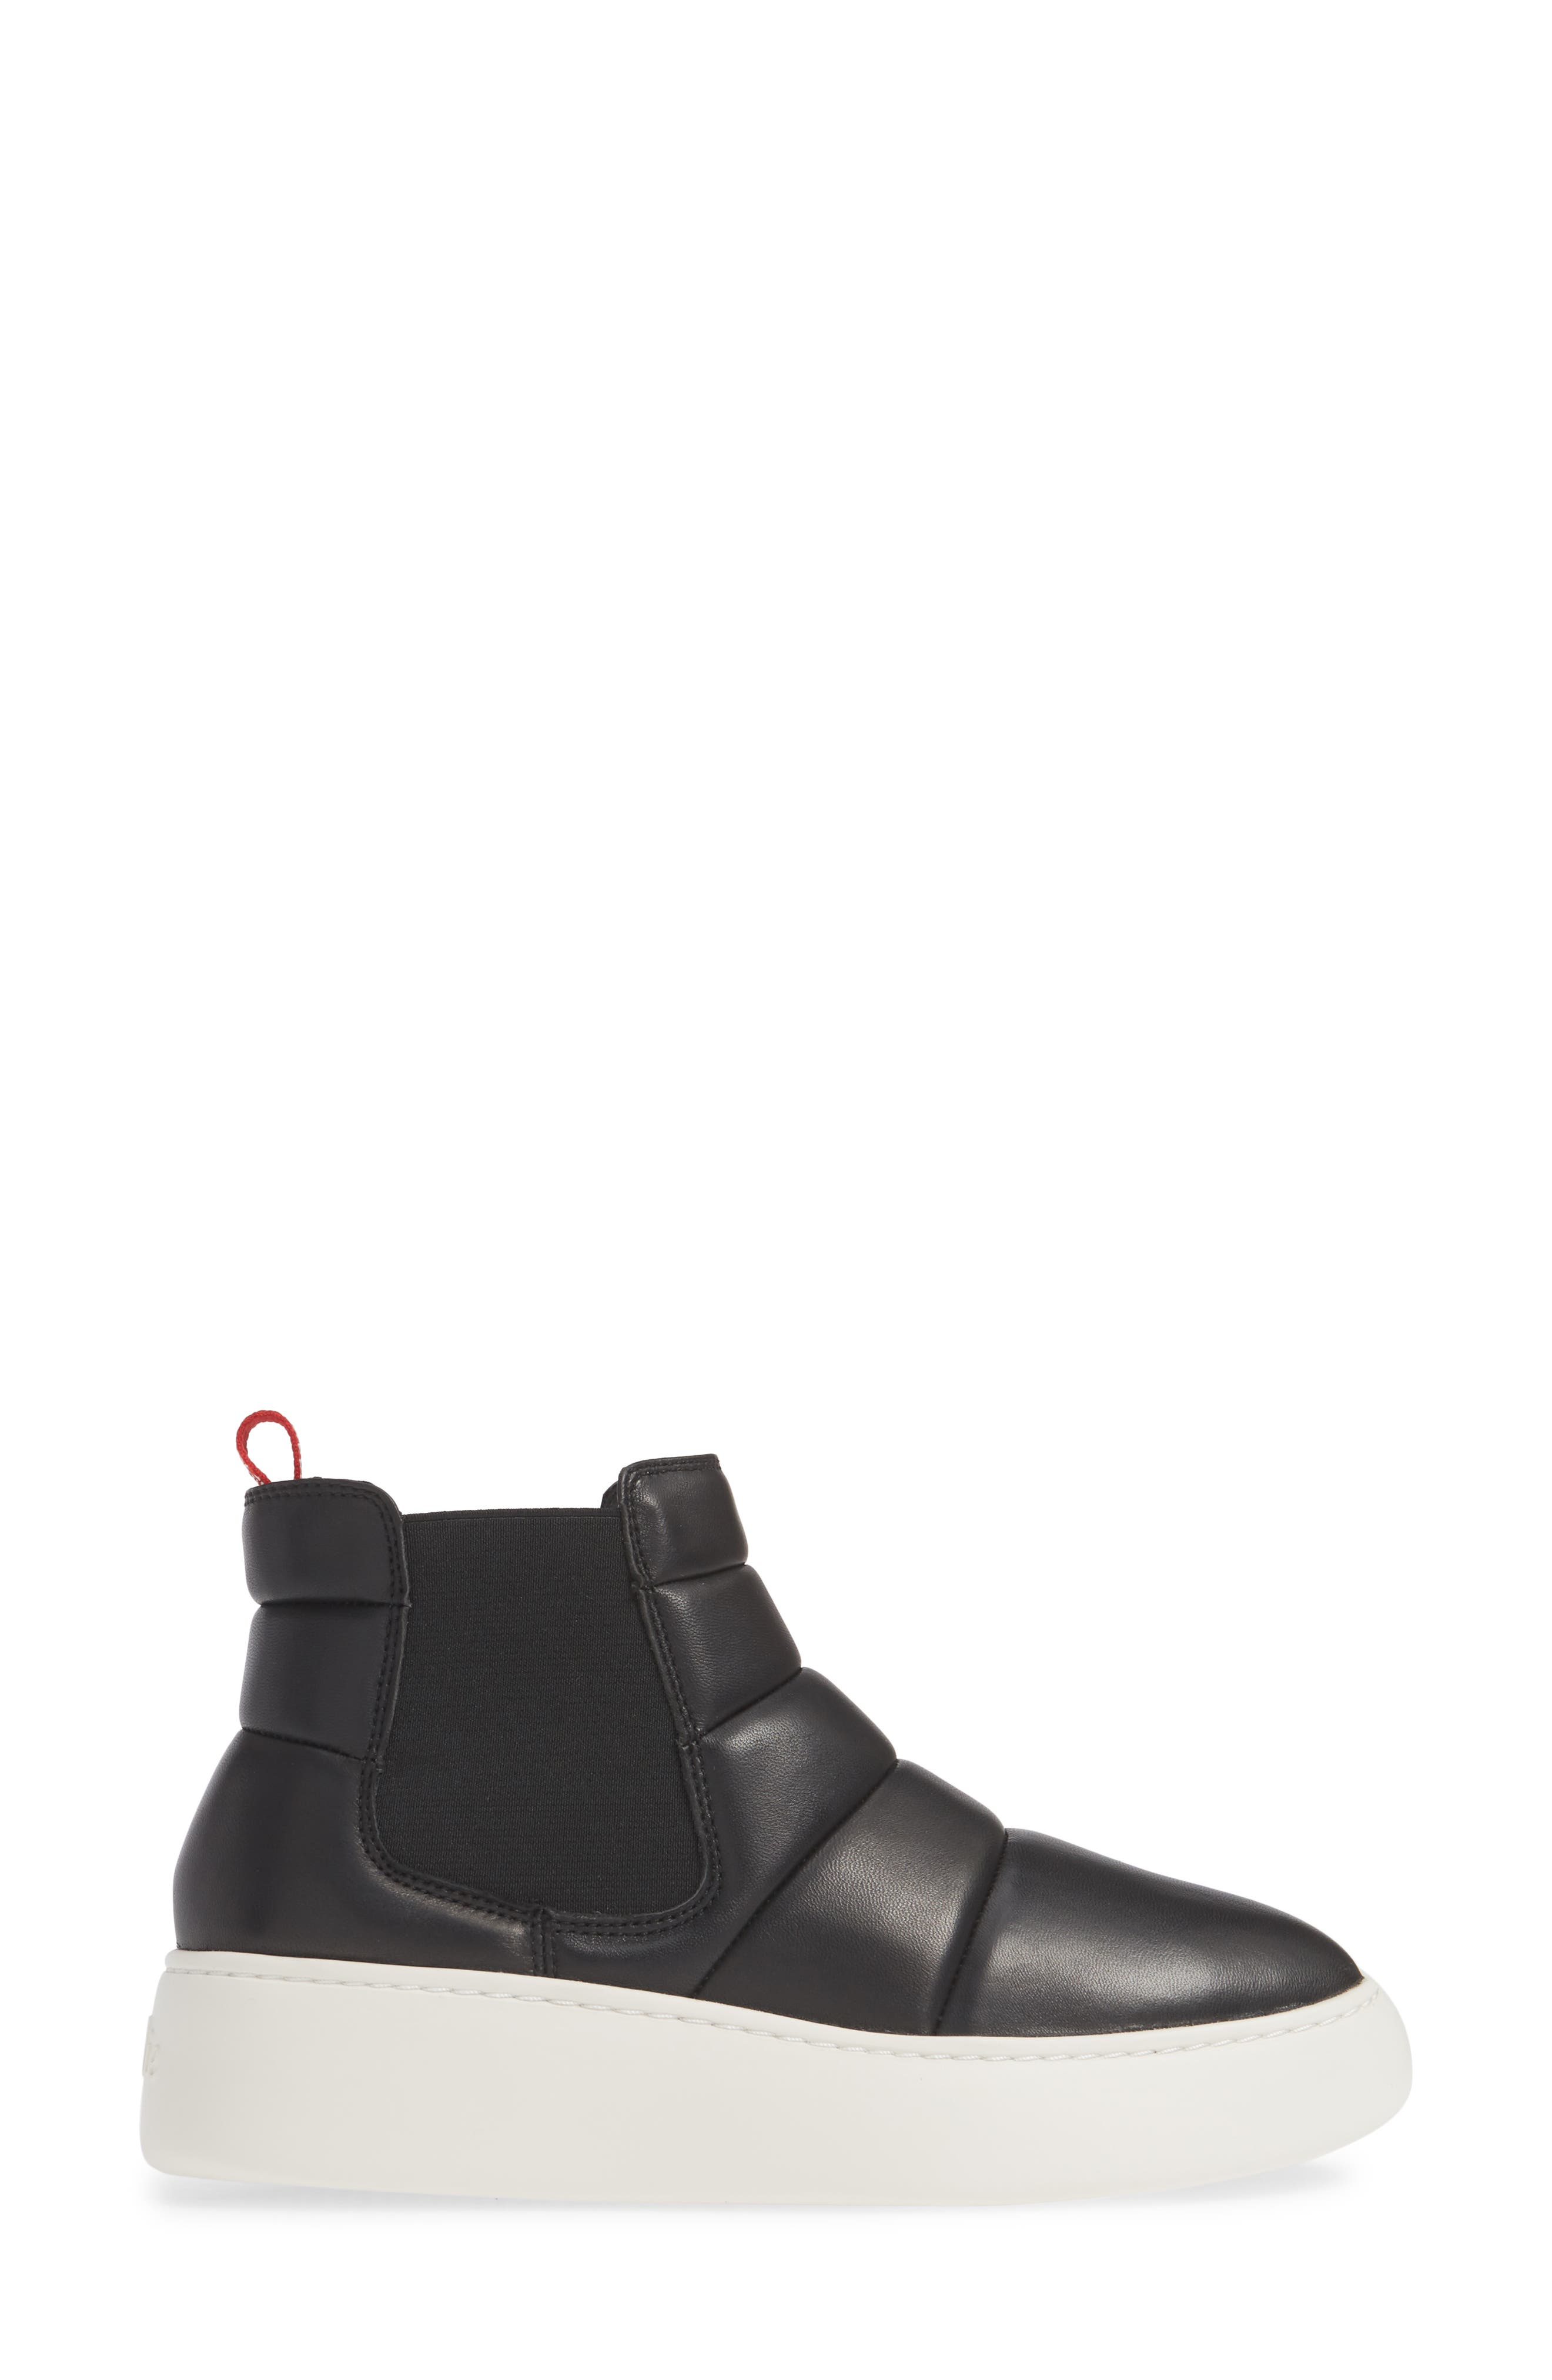 Snow City Quilted Chelsea Sneaker Boot,                             Alternate thumbnail 3, color,                             BLACK NAPPA